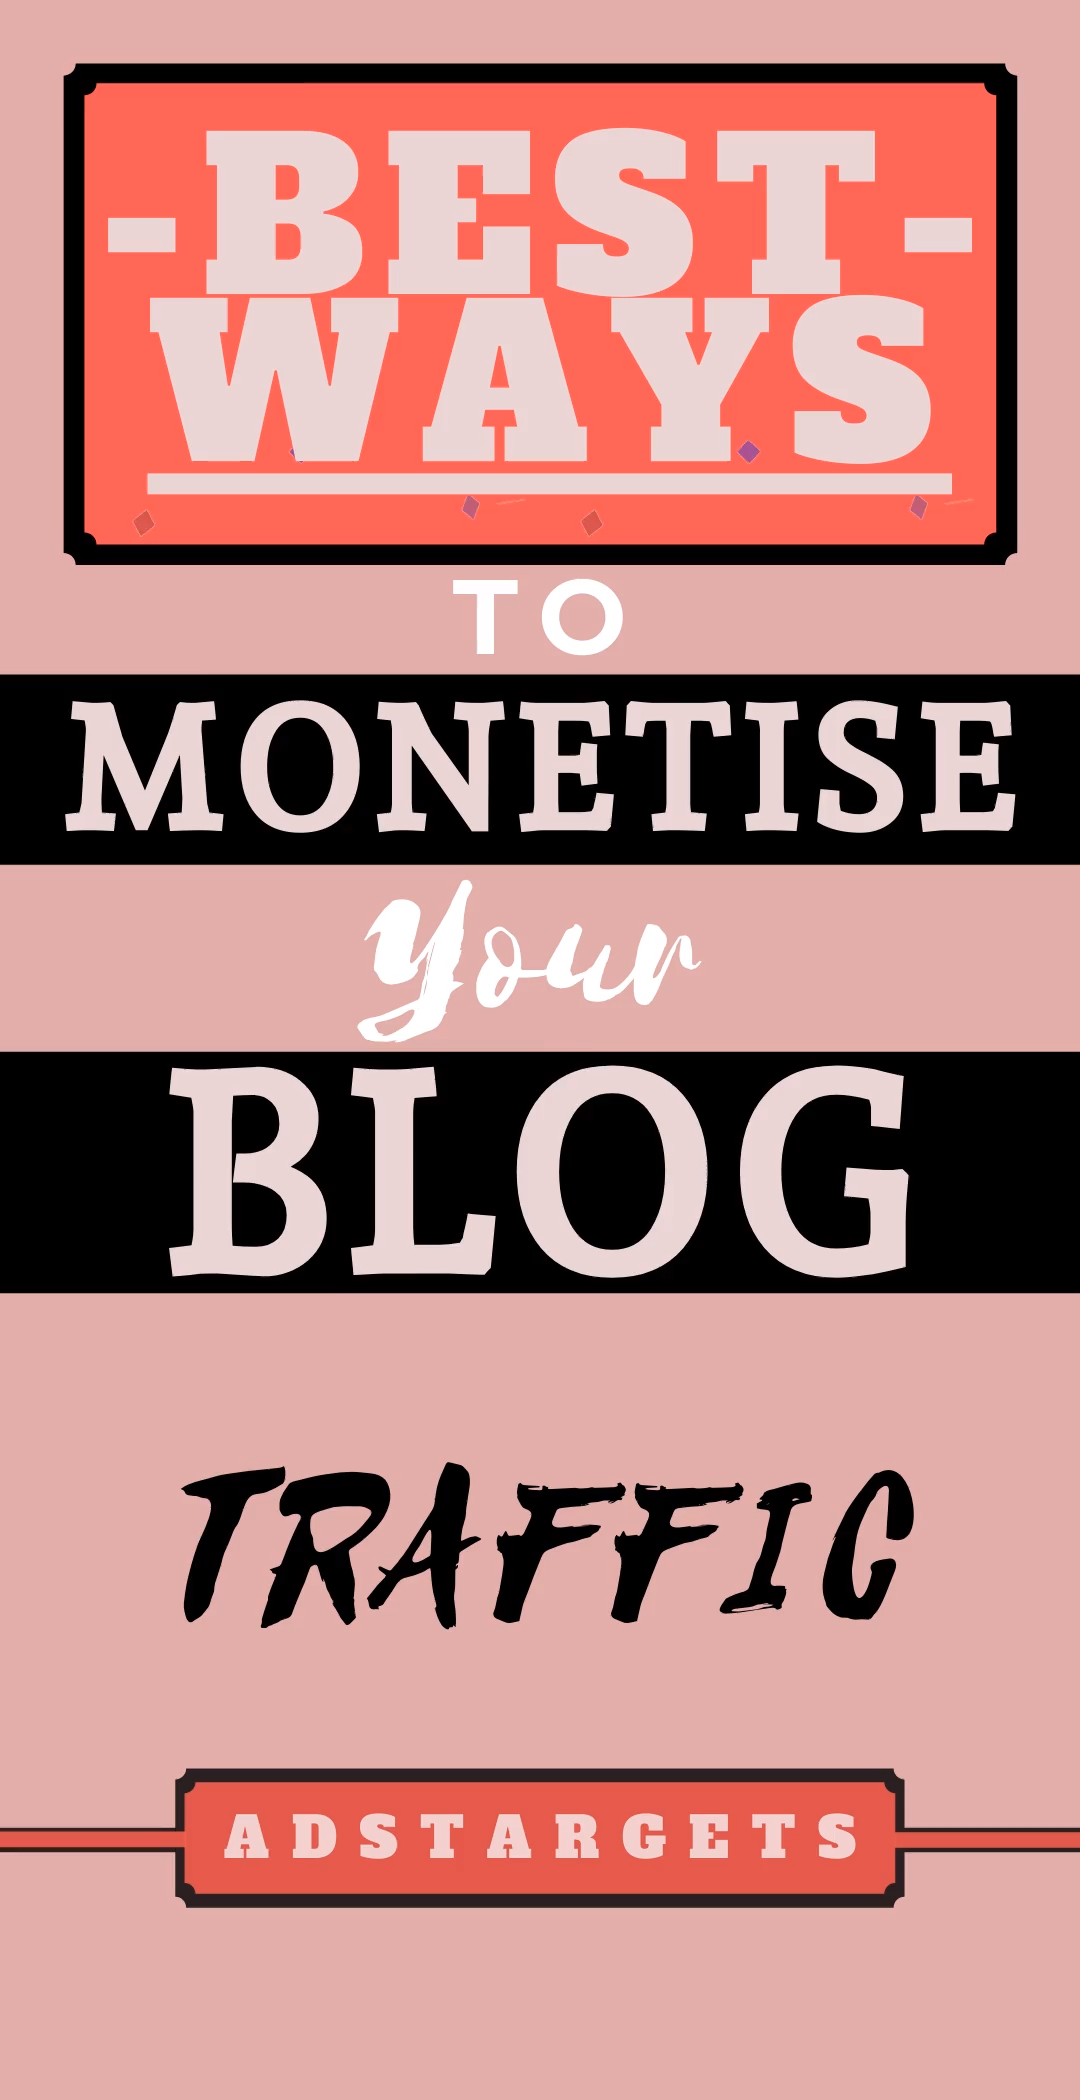 Best Ways to Monetise Your Blog Traffic